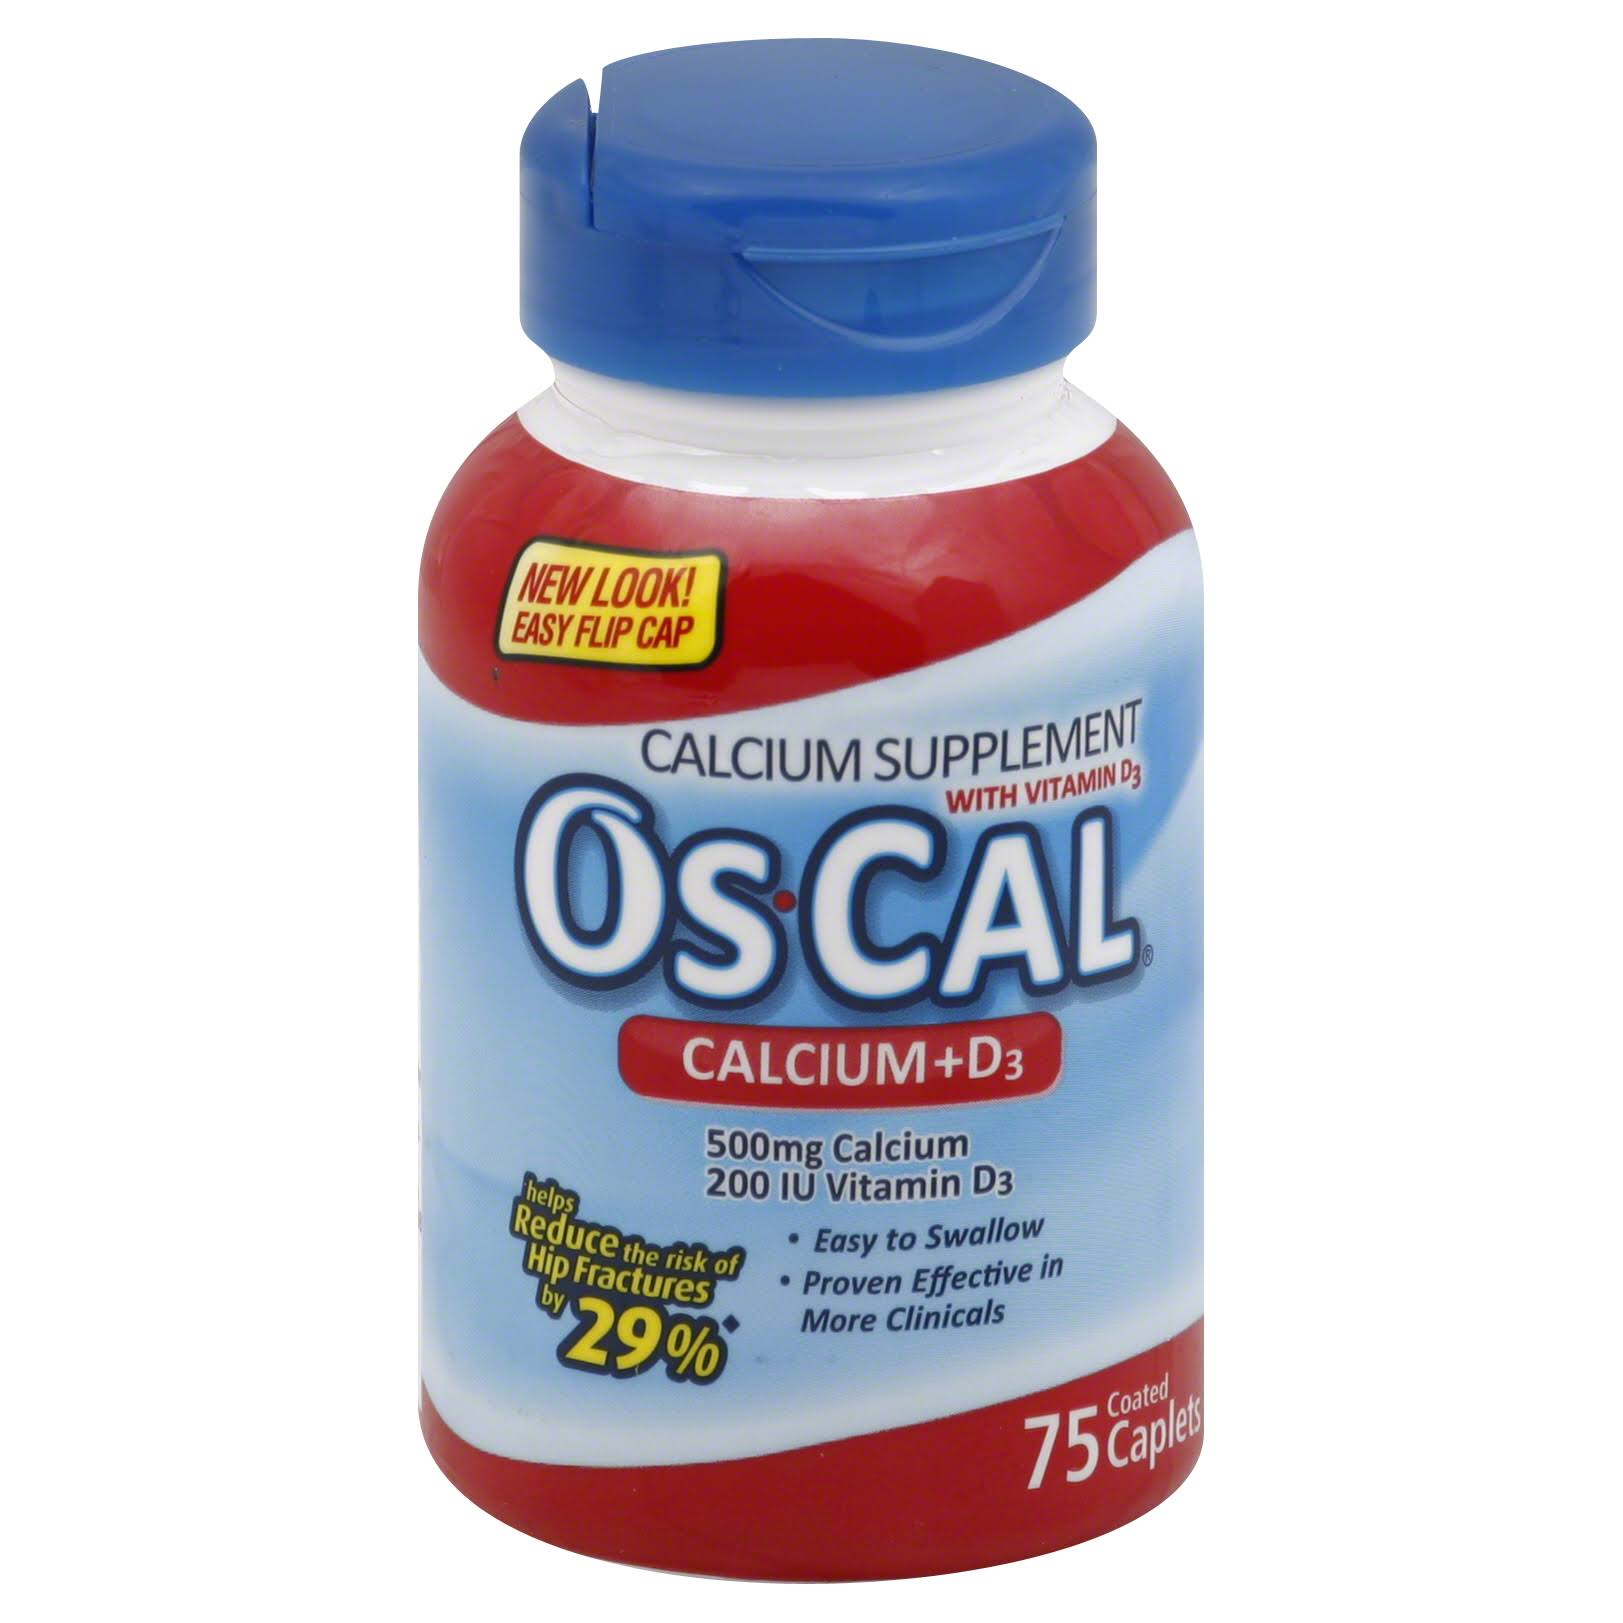 Gsk Os Cal Calcium and D3 Dietary Supplement - 75 Pack